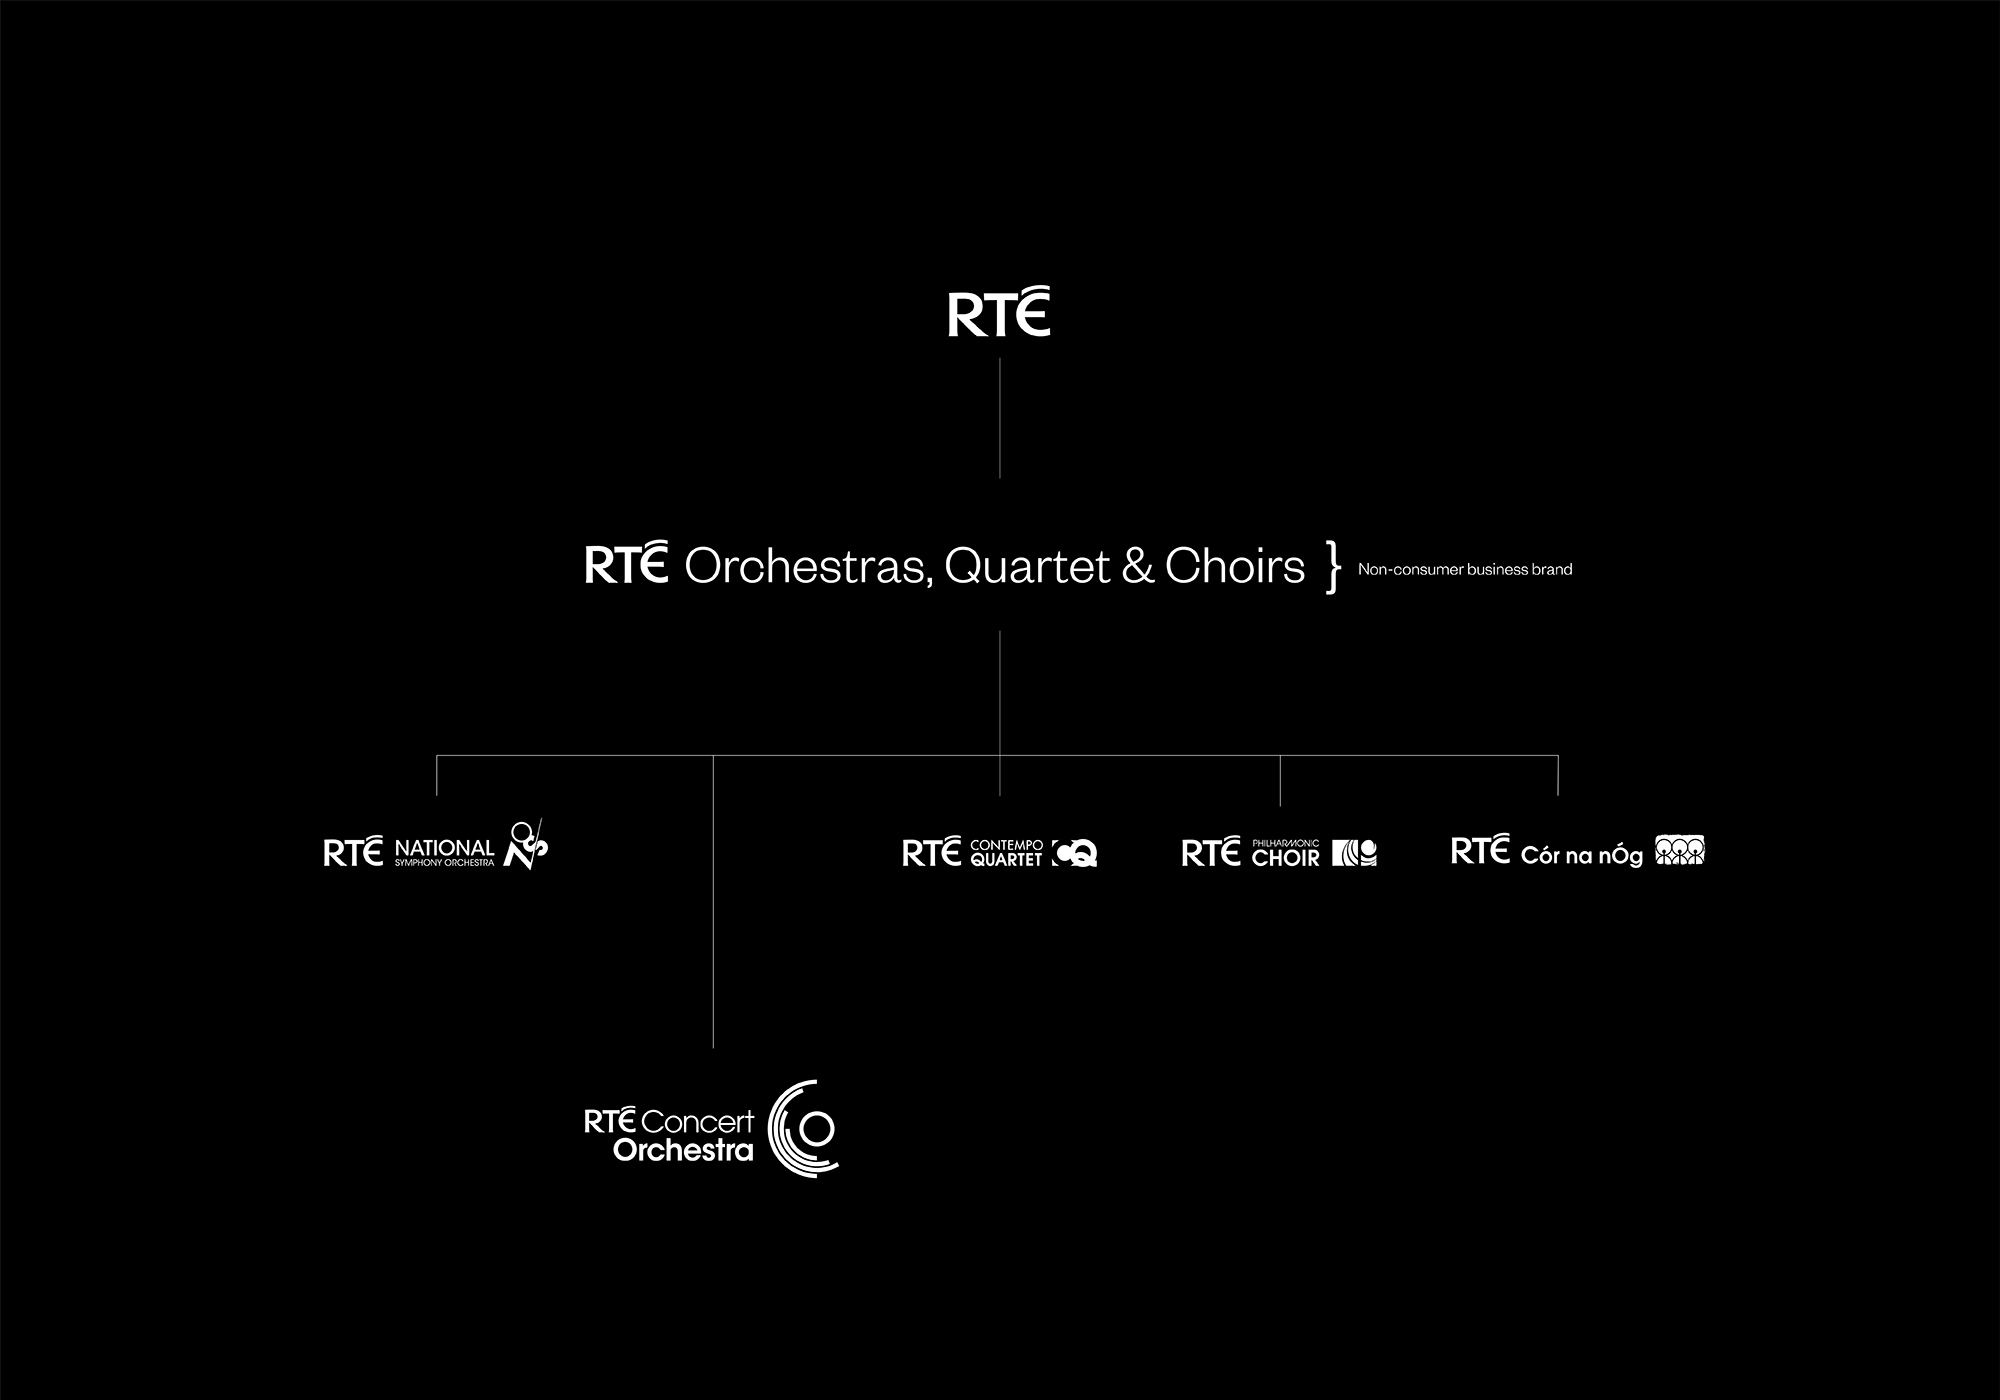 Cover image: RTÉ Concert Orchestra Identity framework